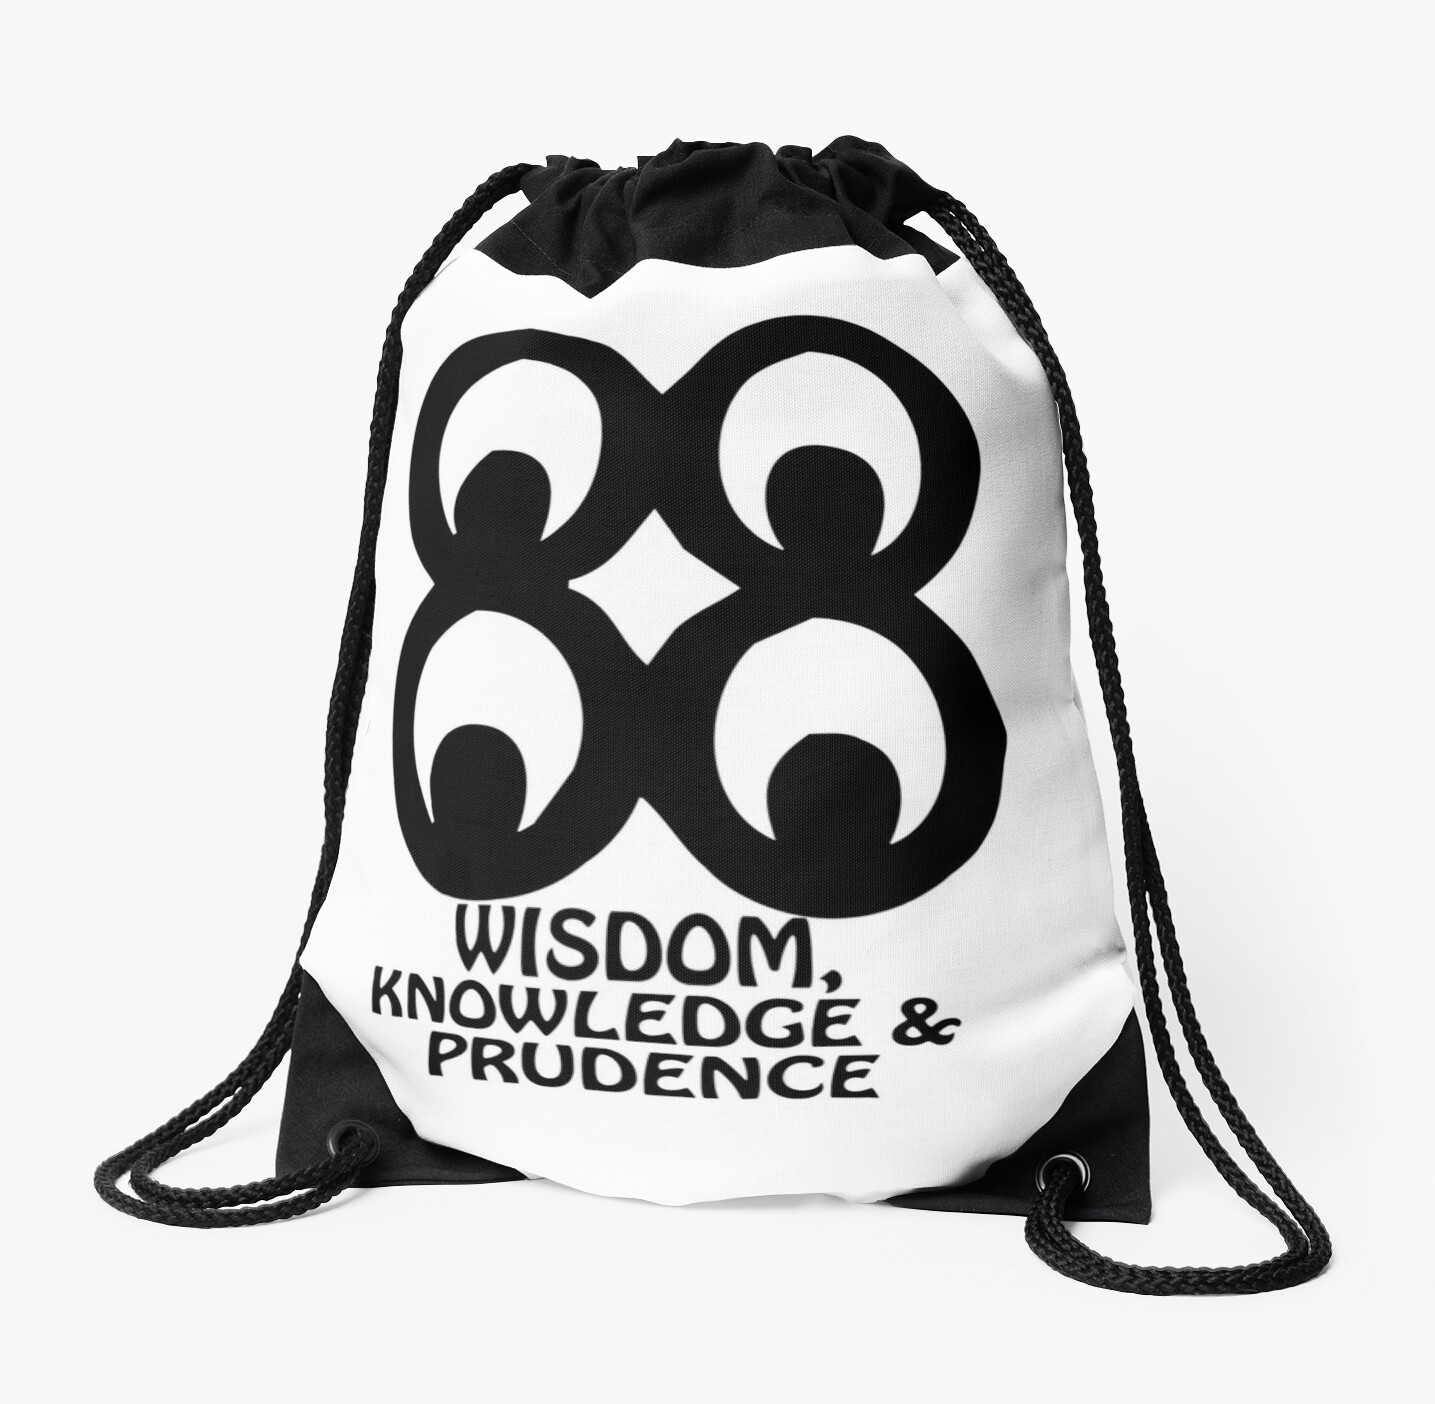 Symbols for wisdom and knowledge